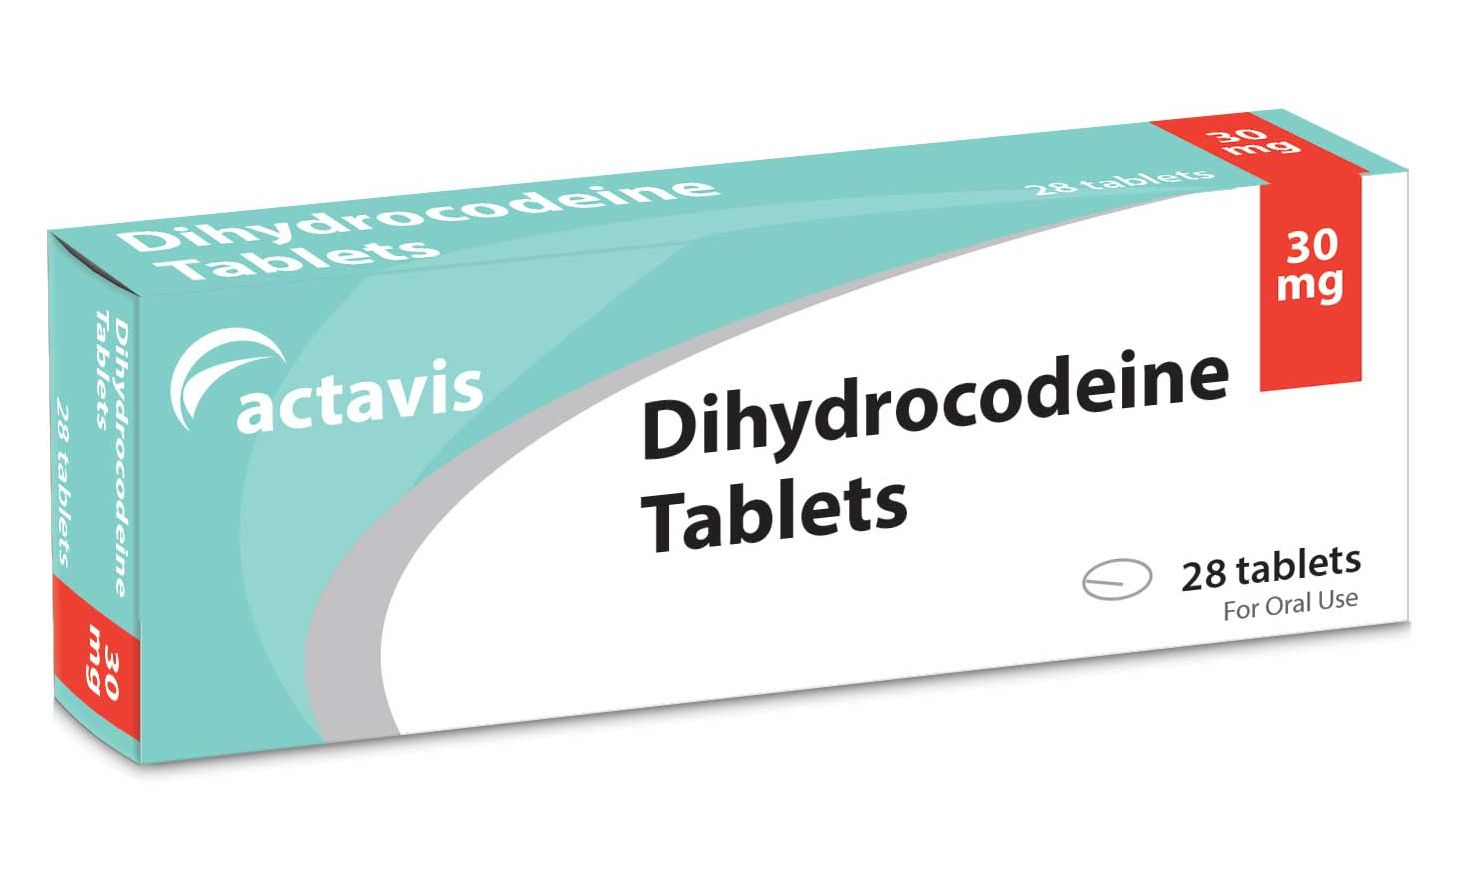 A Cocaine Addict Died of a Dihydrocodeine Overdose. The Coroner Blamed Steroids Too.